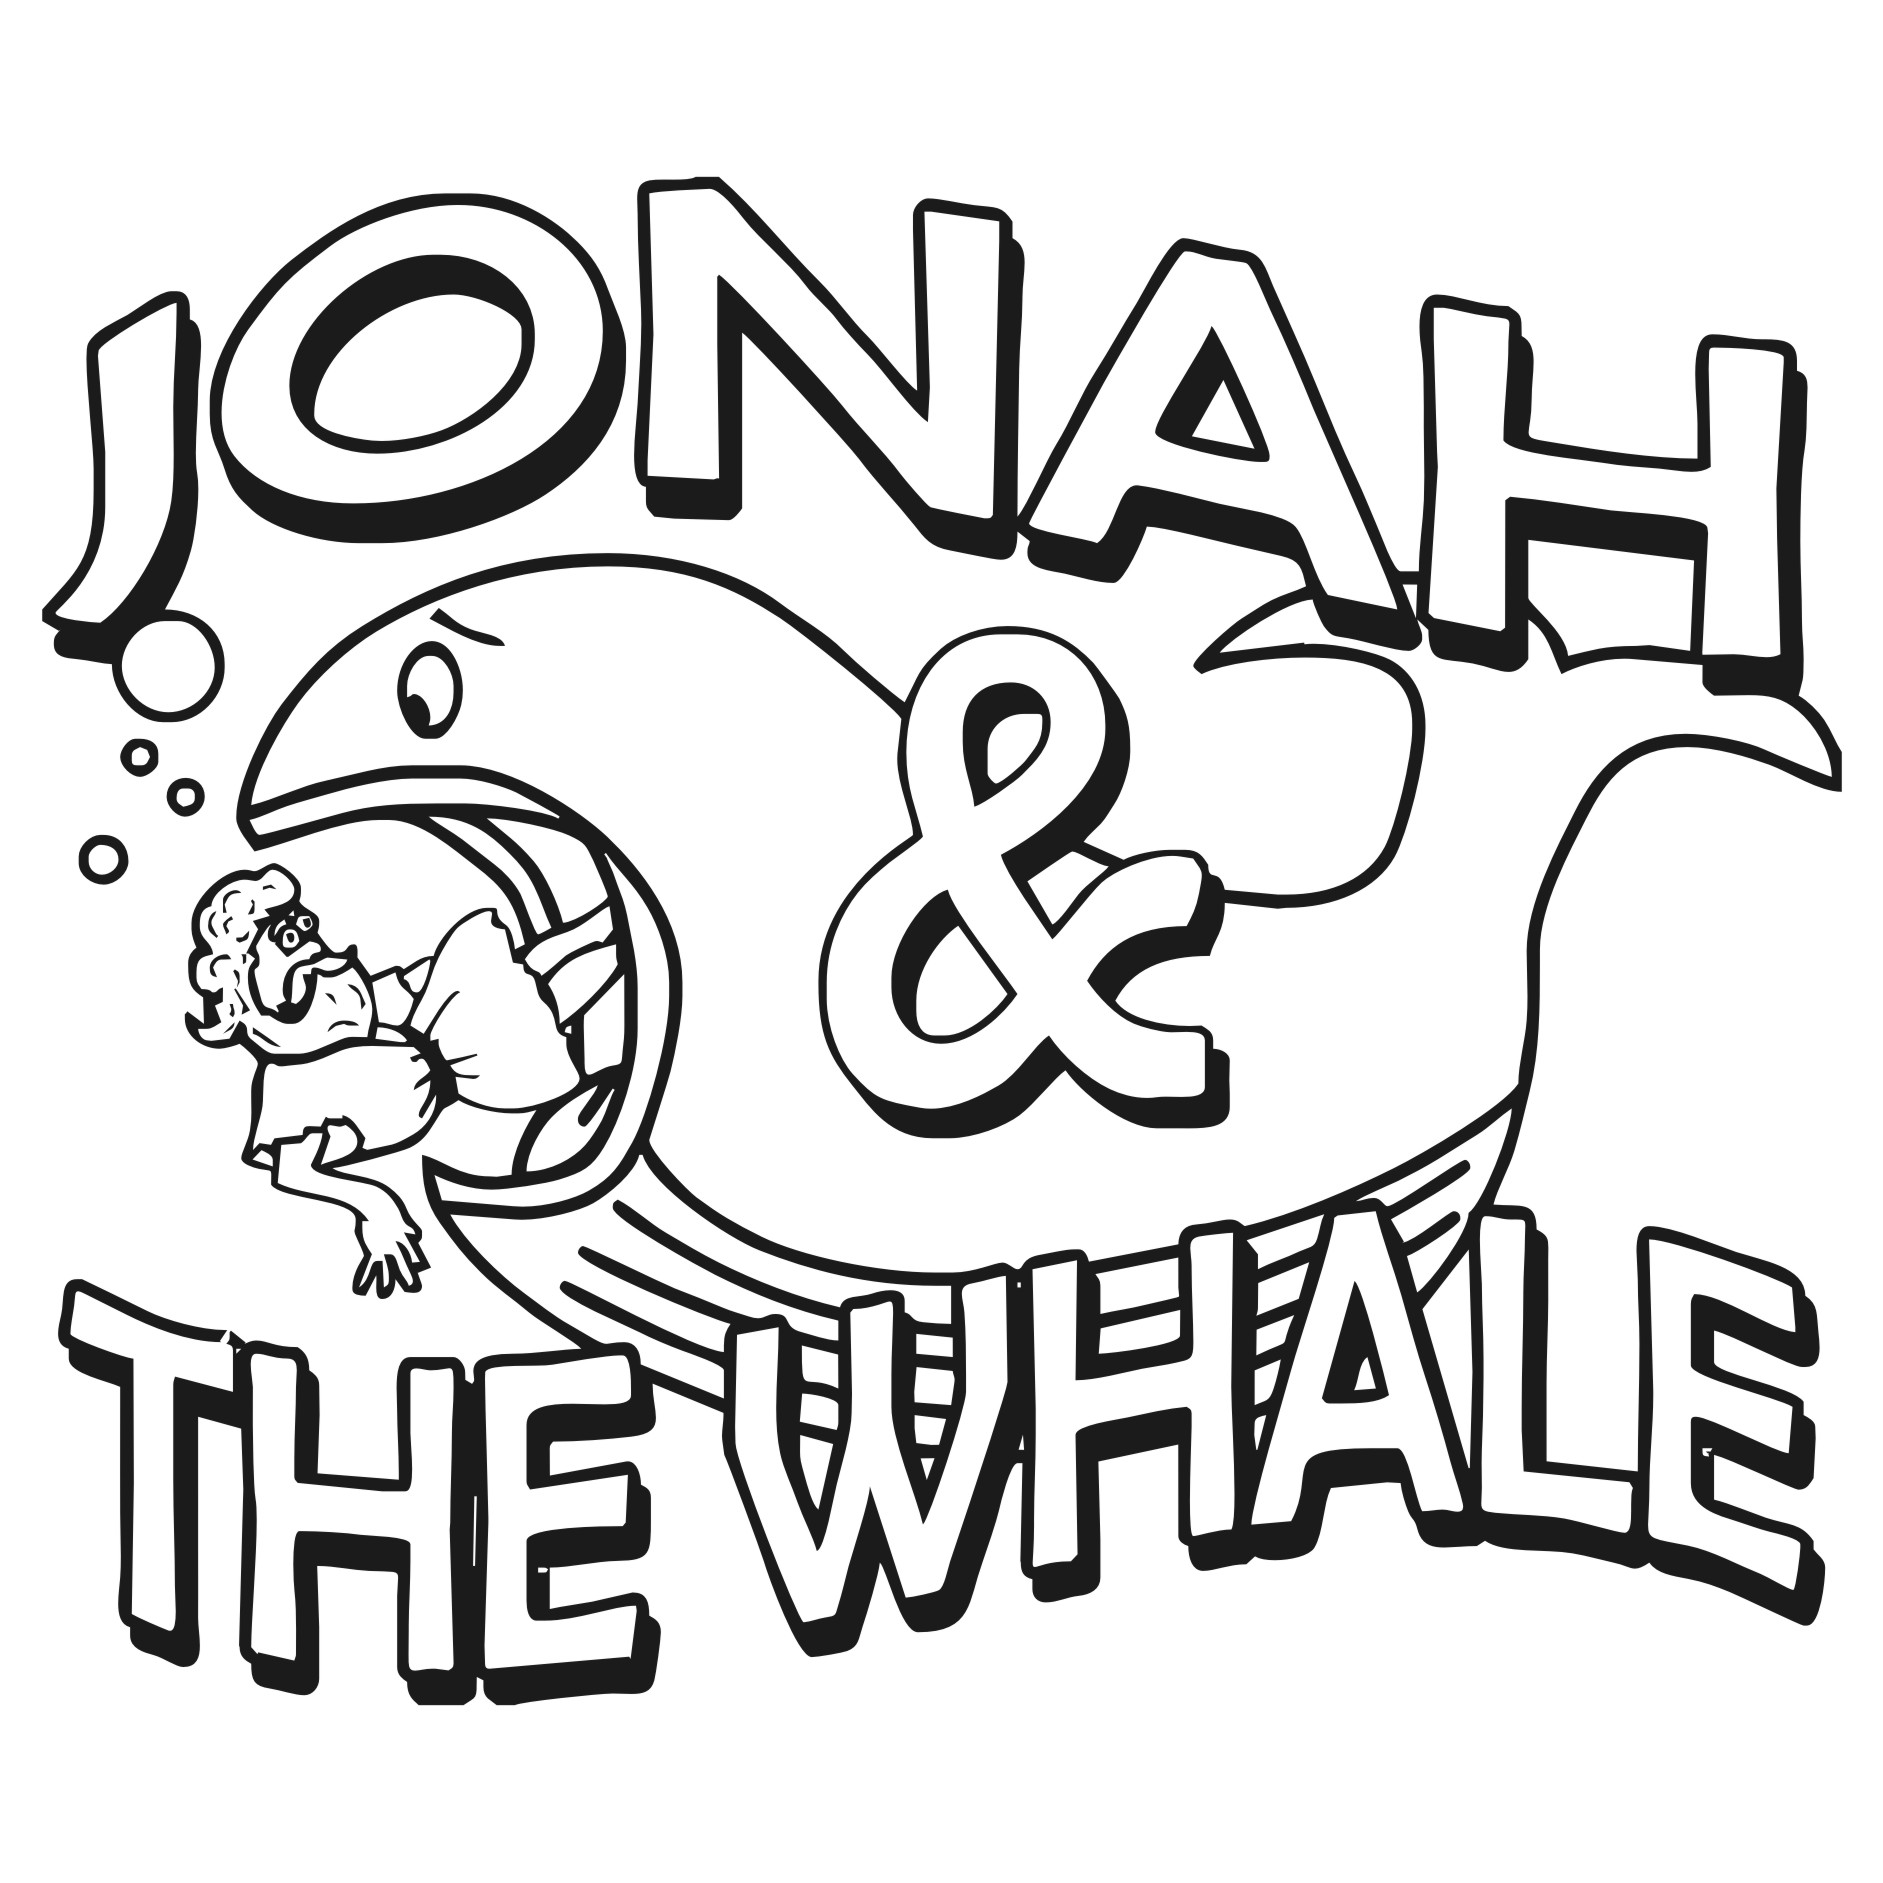 Jonah Coloring Pages Printable At Getdrawings Com Free For